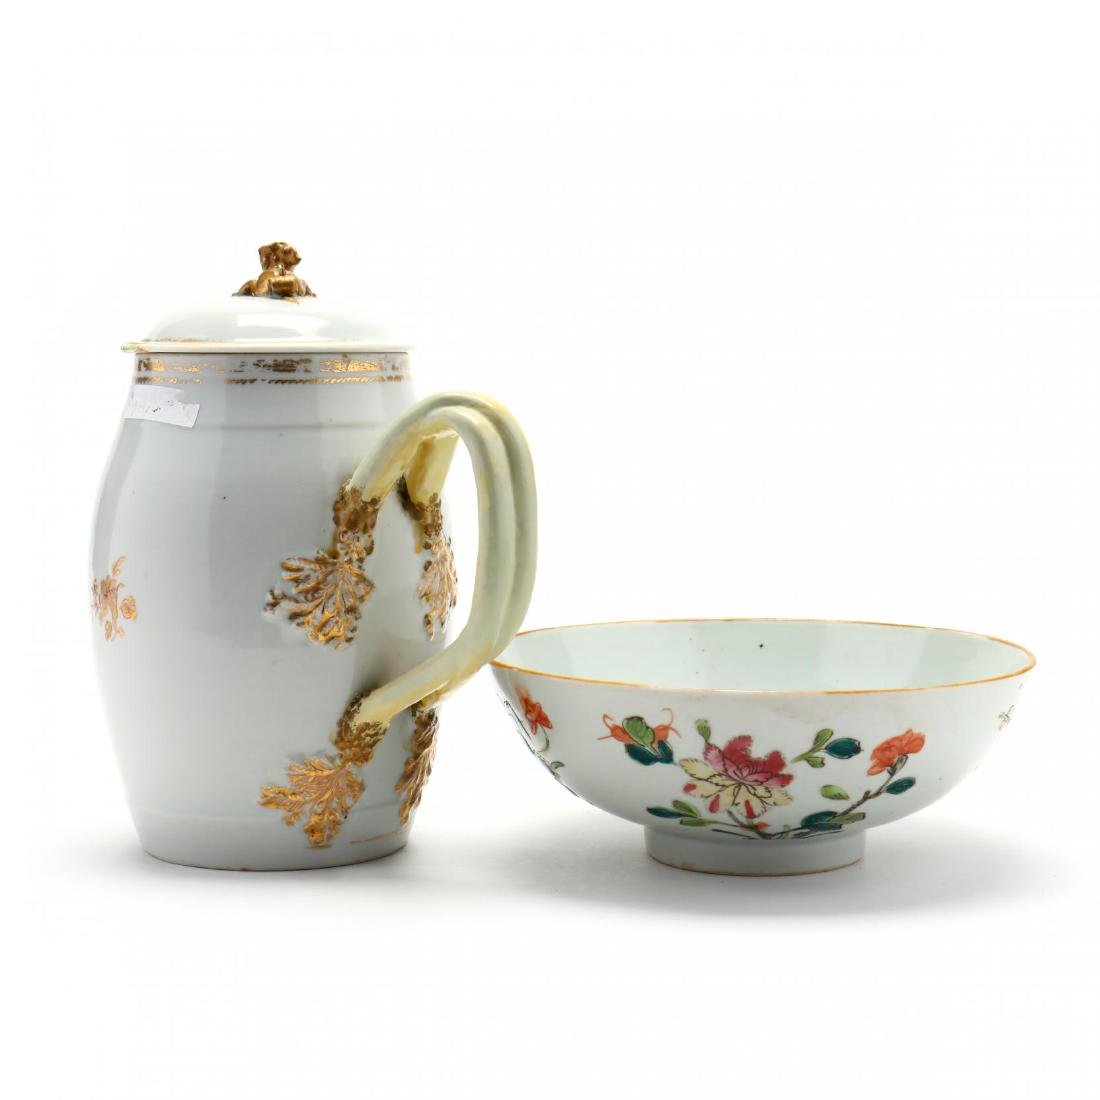 Antique Chinese Export Pitcher and Bowl - 2